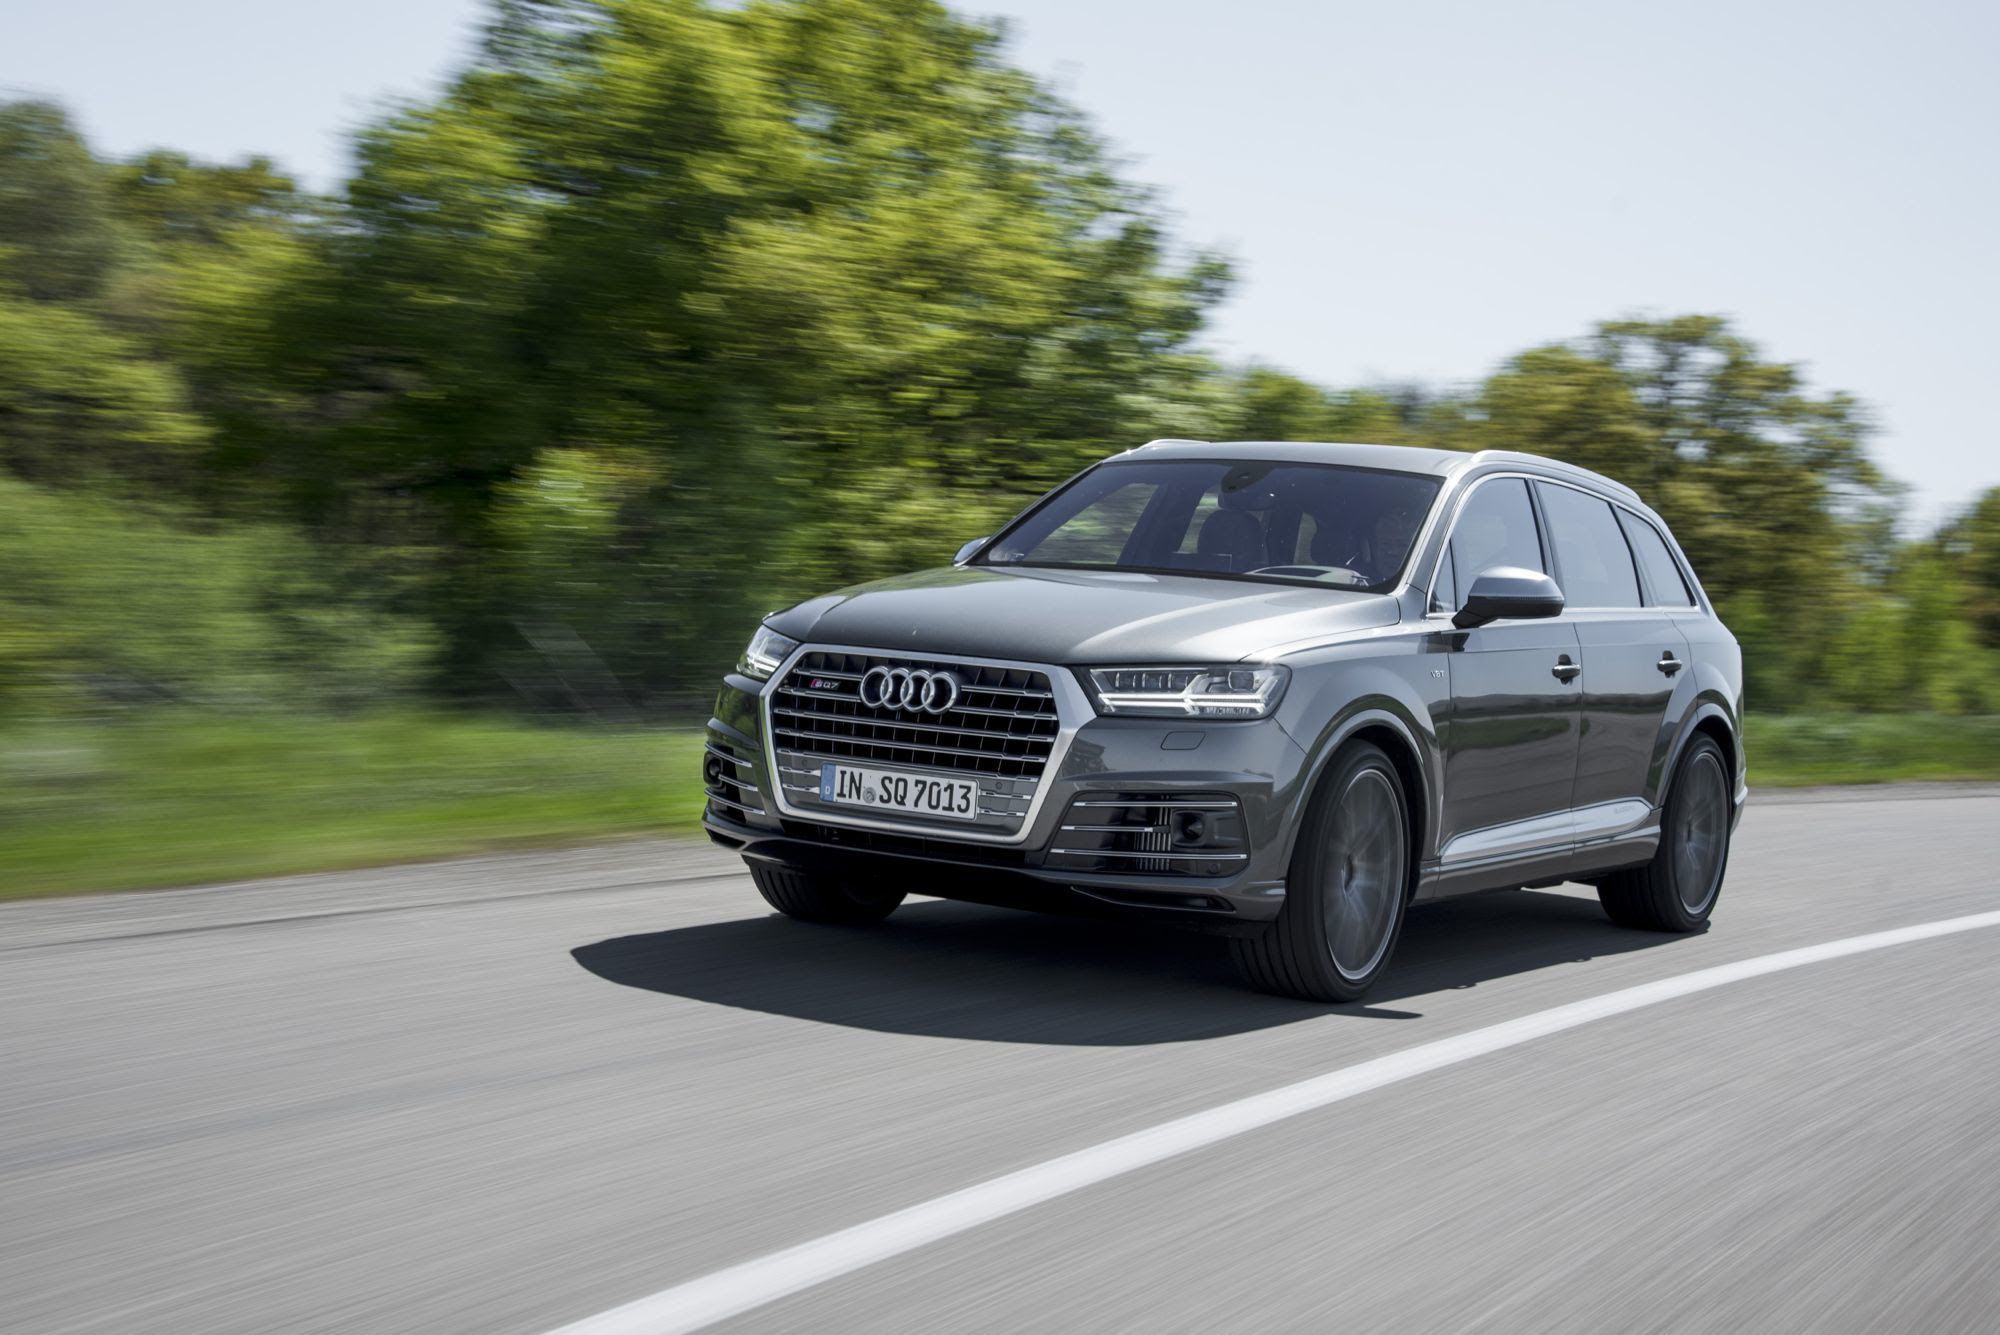 2017 Audi SQ7 Review | CarAdvice